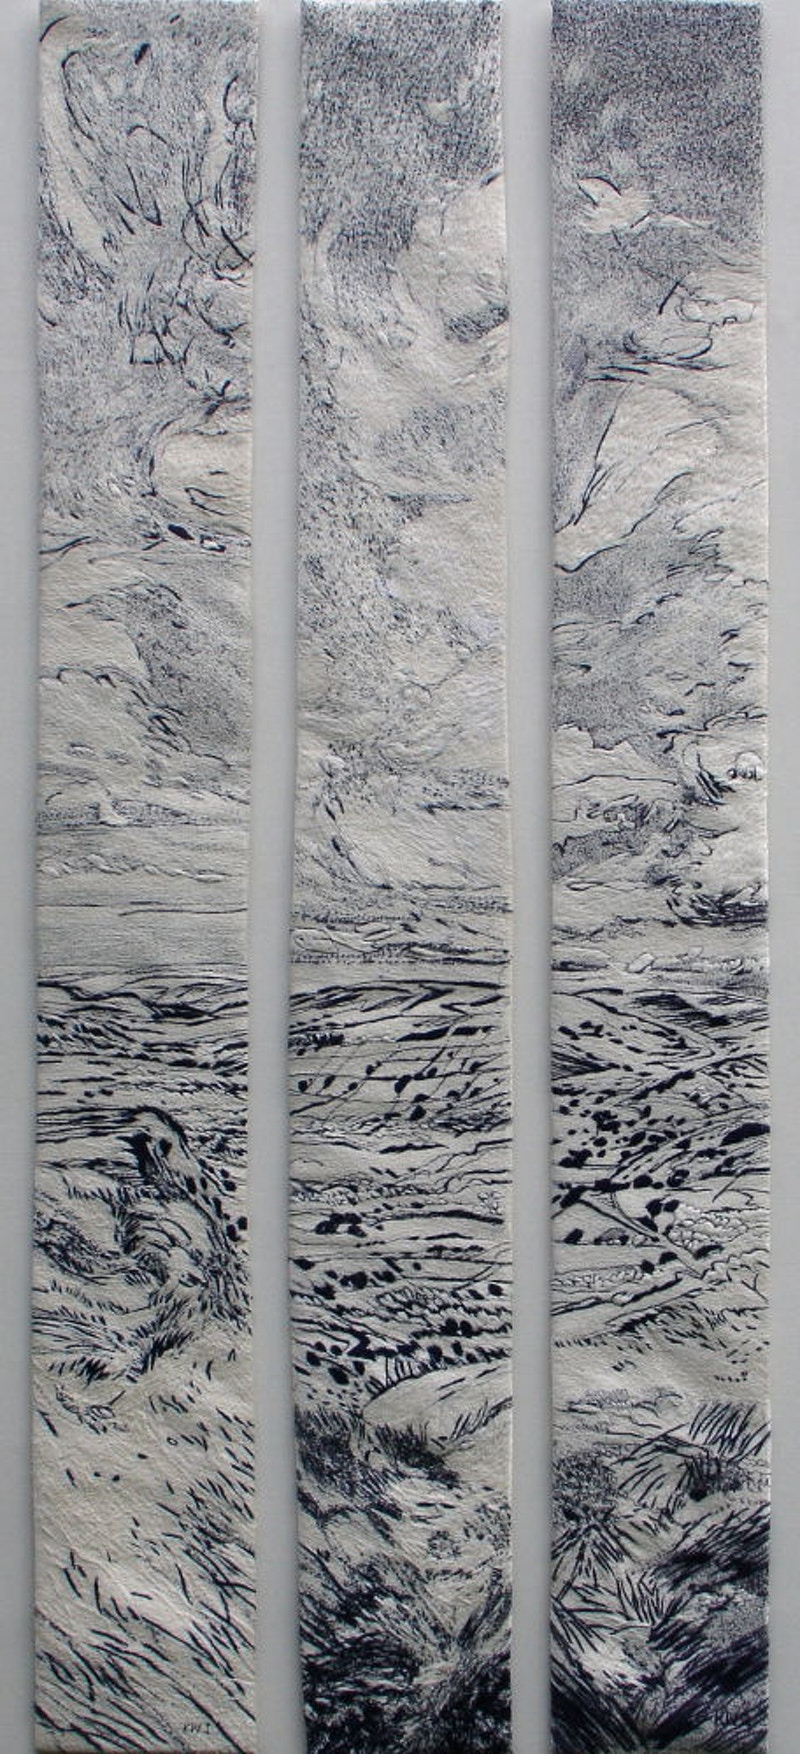 White Peak Triptych (2008) - KATE WELLS artist